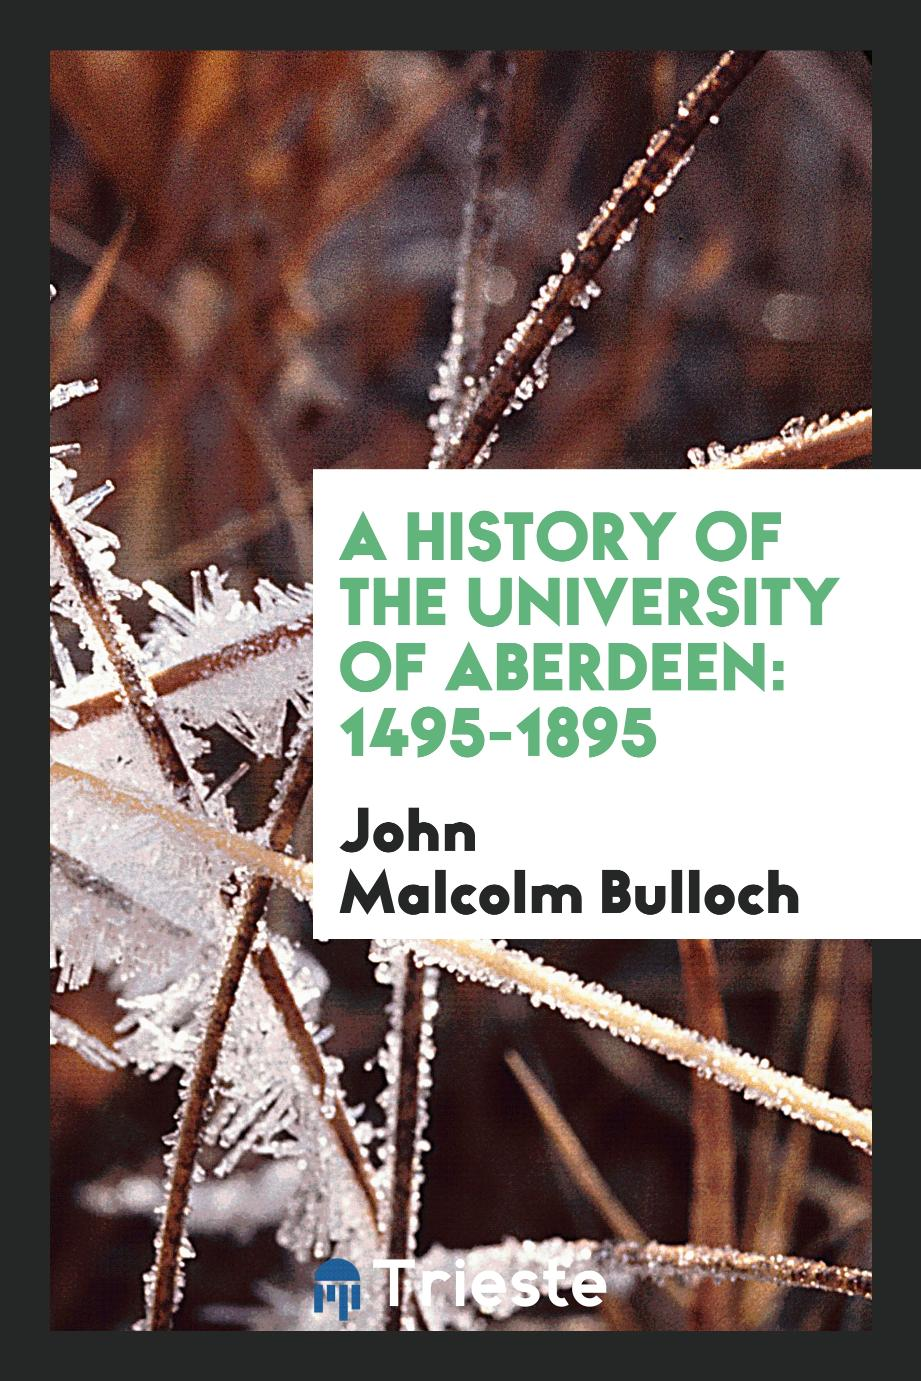 A history of the University of Aberdeen: 1495-1895